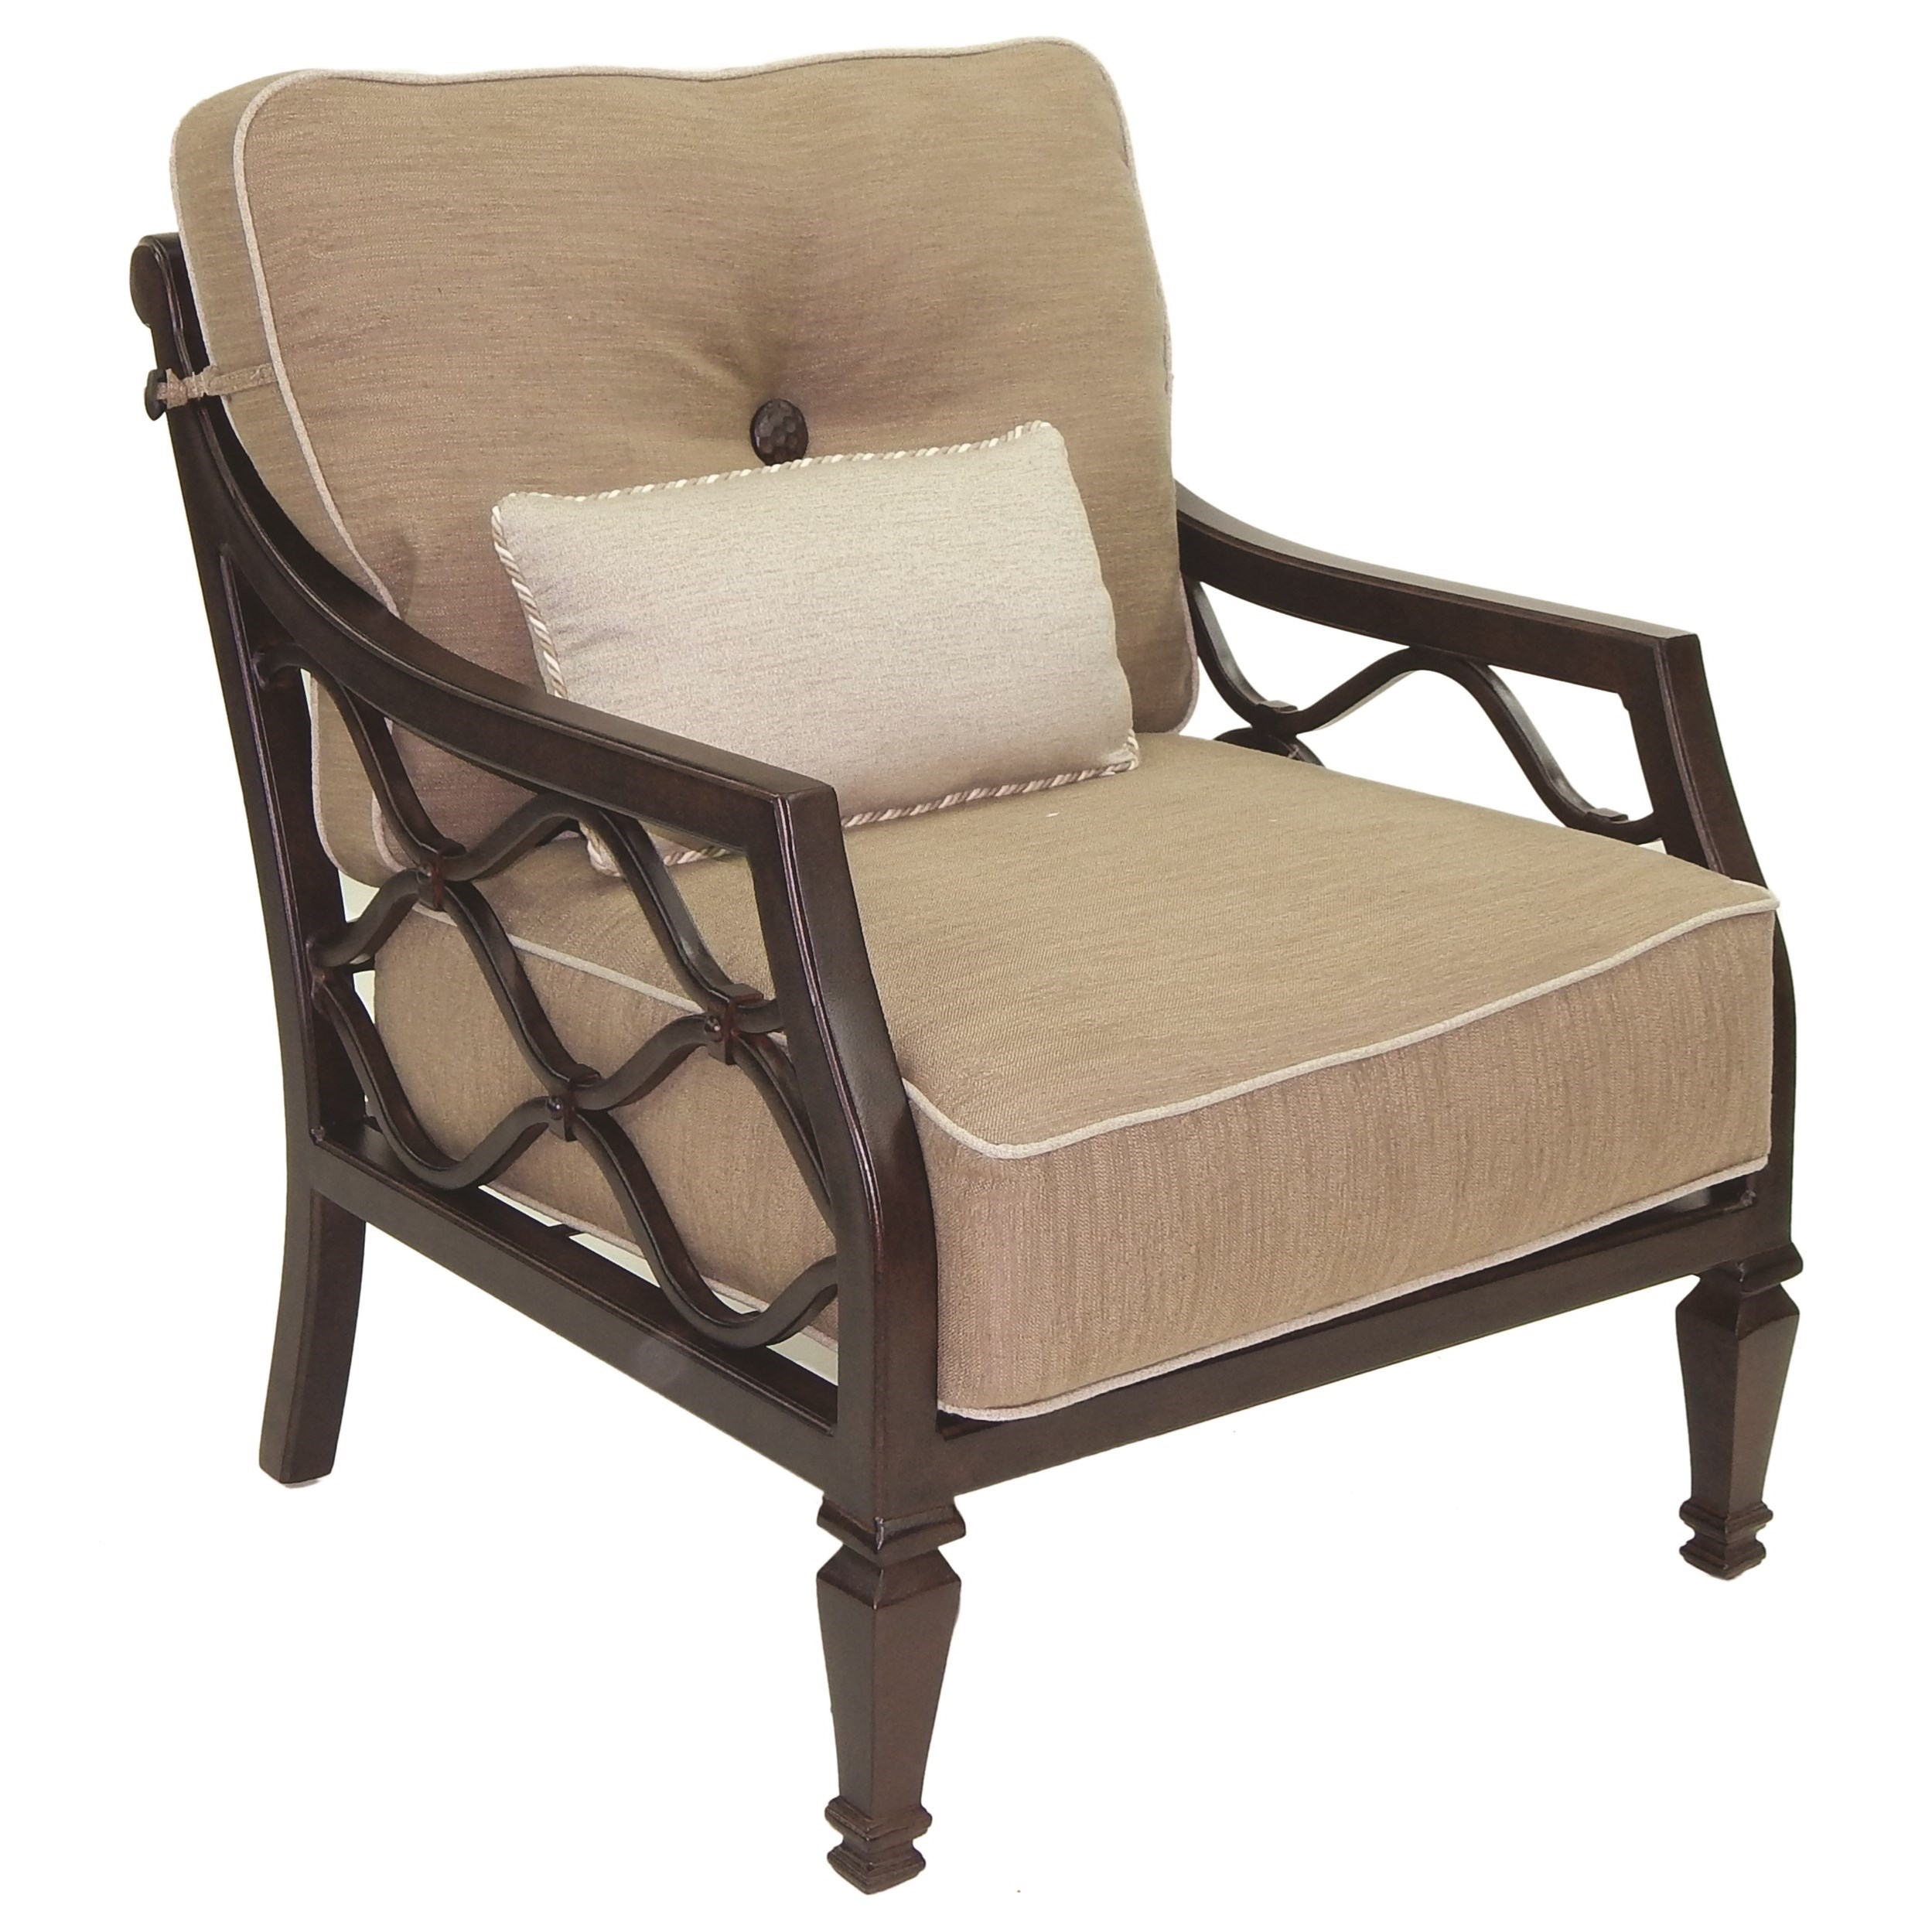 Villa Bianca Cushioned Lounge Chair w/ One Kidney Pillow by Castelle by Pride Family Brands at Baer's Furniture